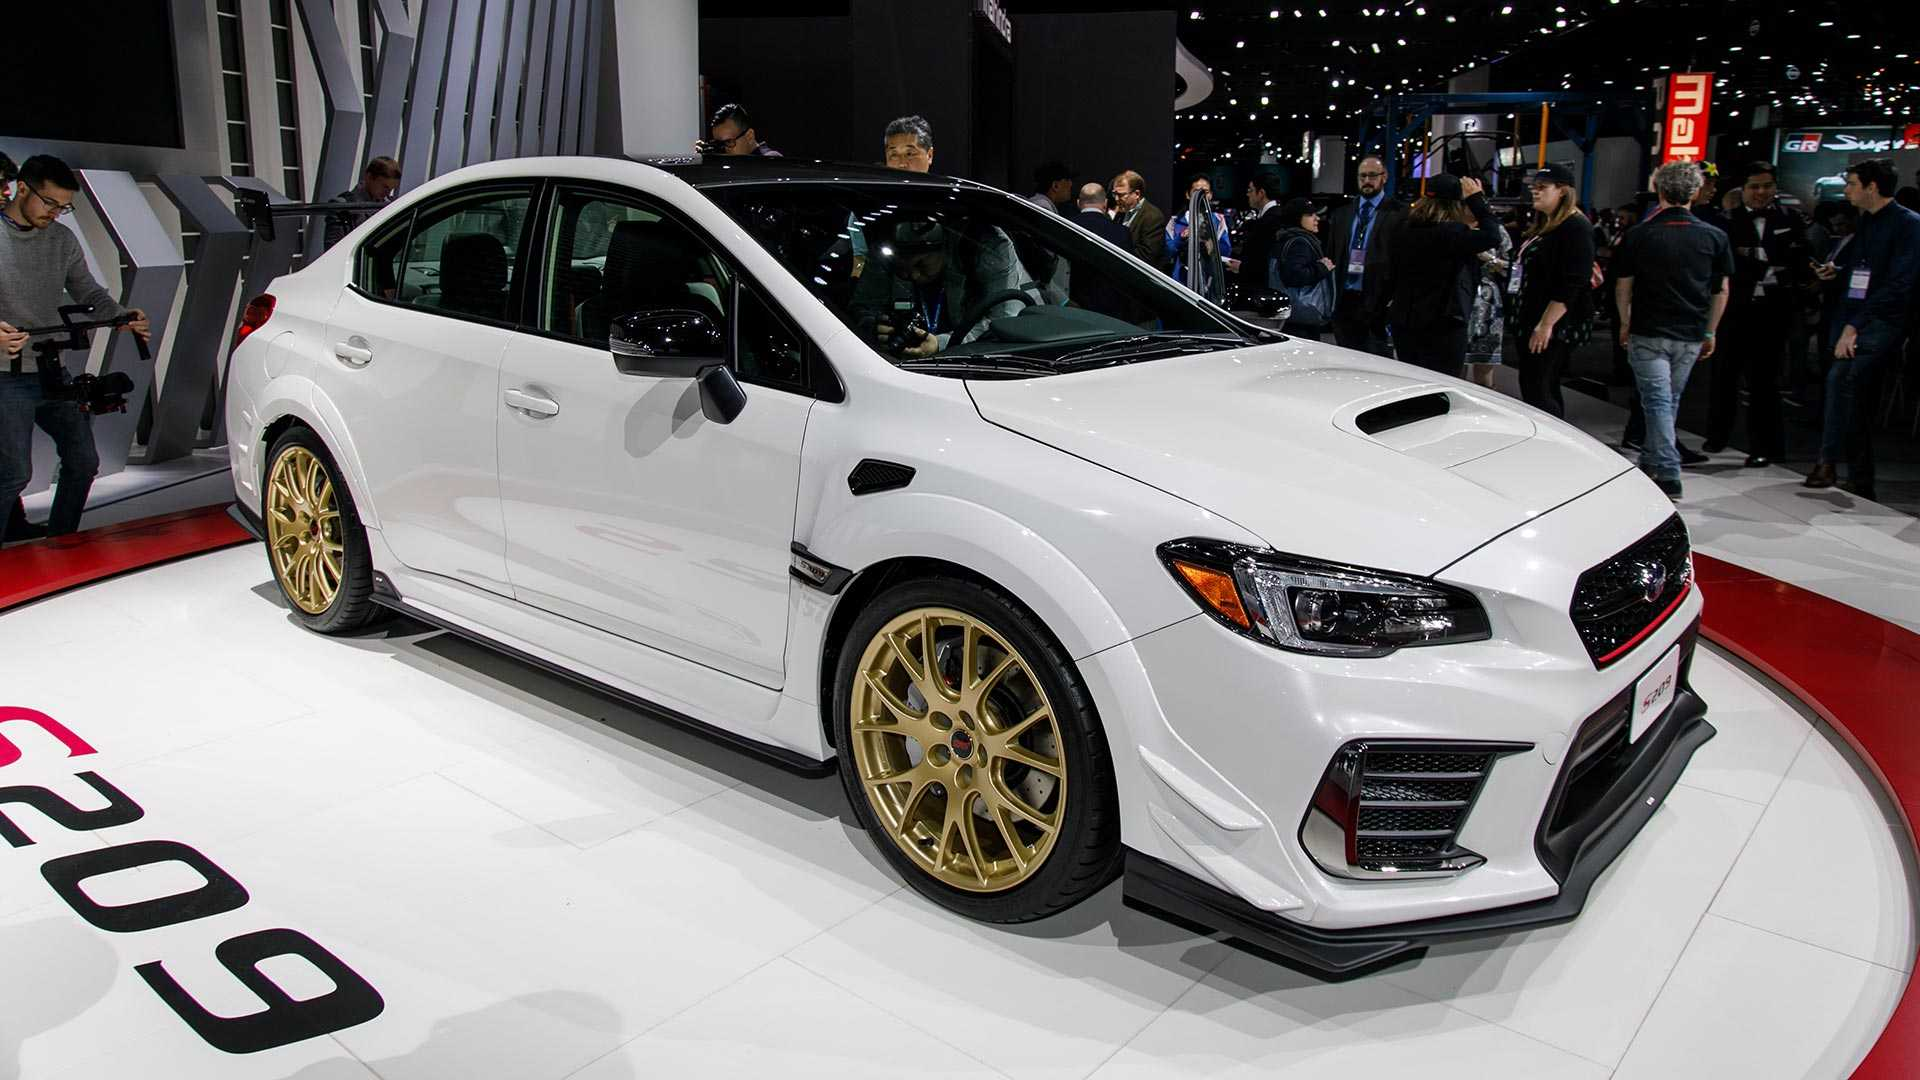 94 A 2019 Subaru Brz Sti Specs Review And Release Date